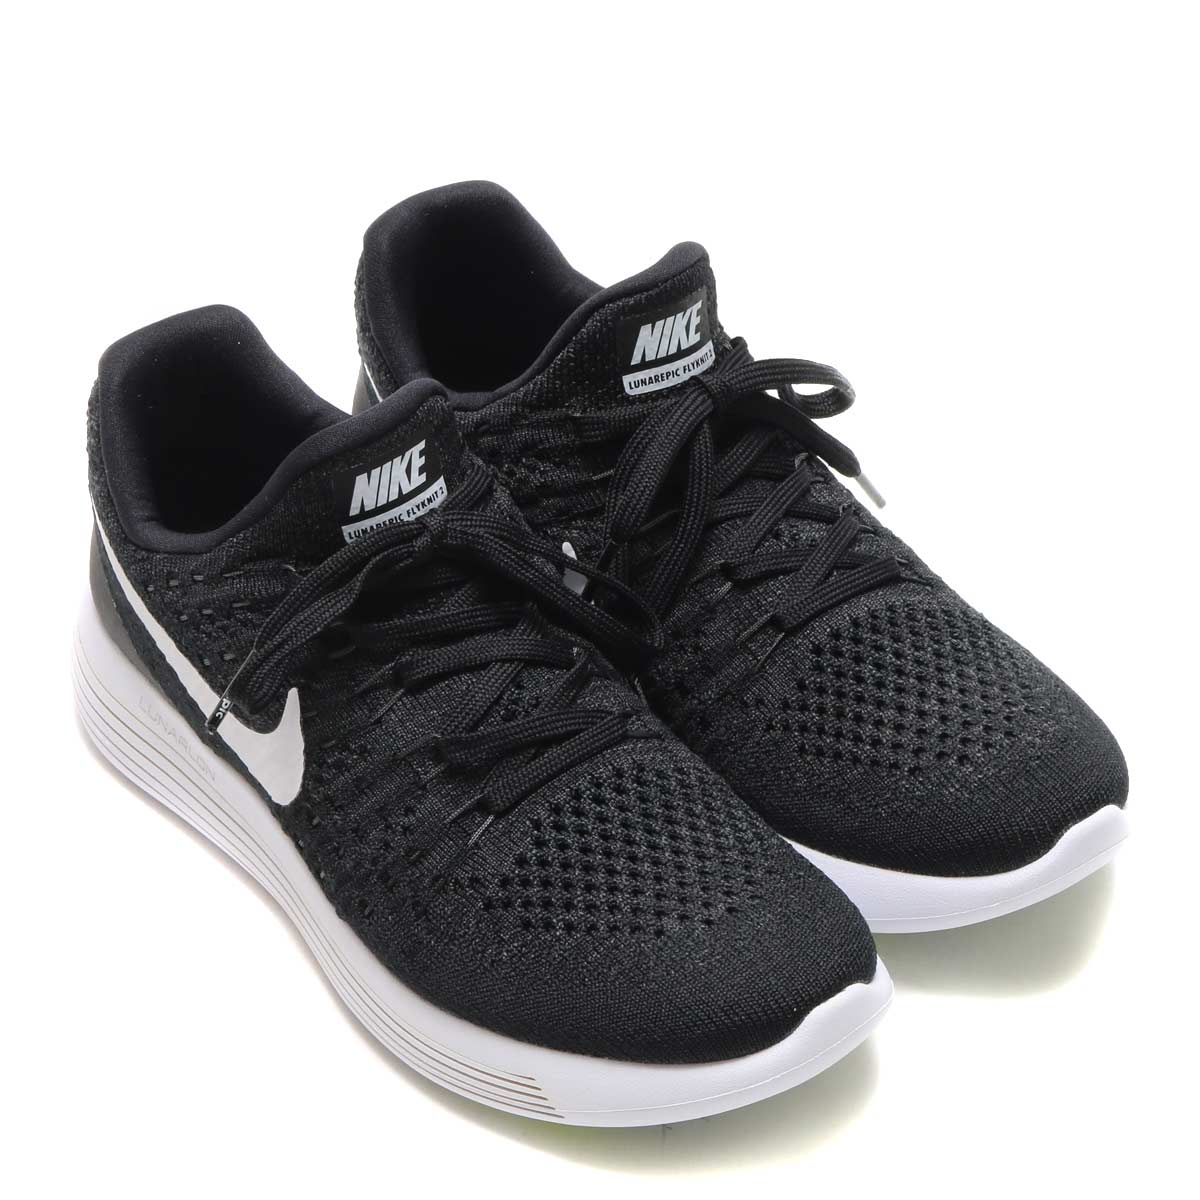 bf664f64c37 NIKE W LUNAREPIC LOW FLYKNIT 2 (Nike women luna epic loaf rye knit 2) (BLACK  WHITE-ANTHRACITE) 17SP-S